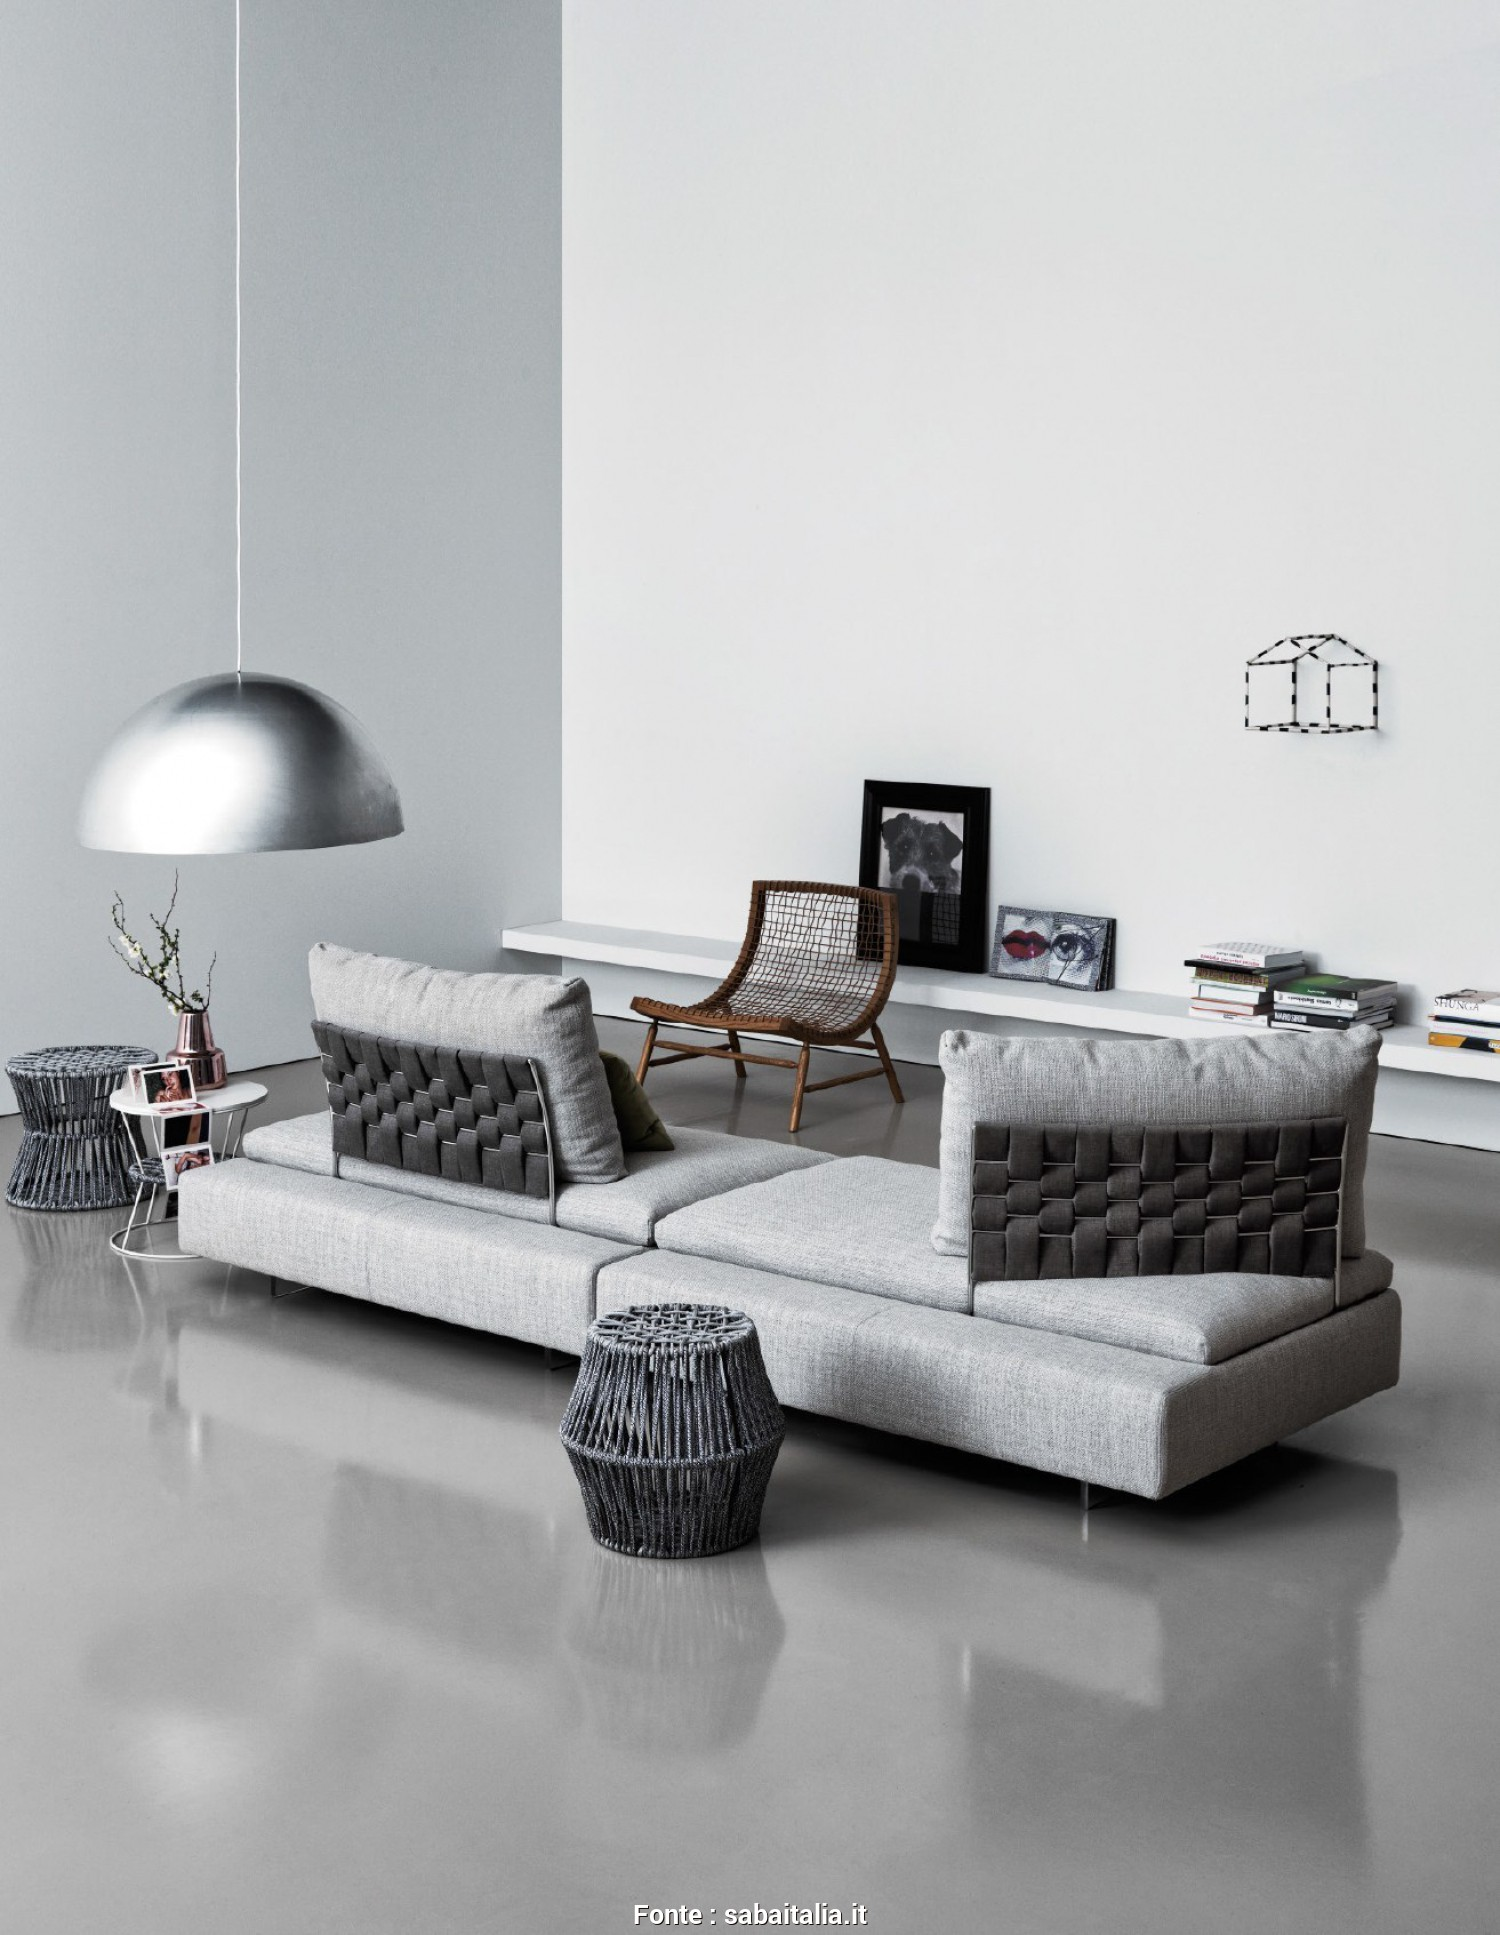 Saba Salotti, Martino Di Lupari, Fantasia Get Inspired, Find, Products, Love, See, They Look In Your Home